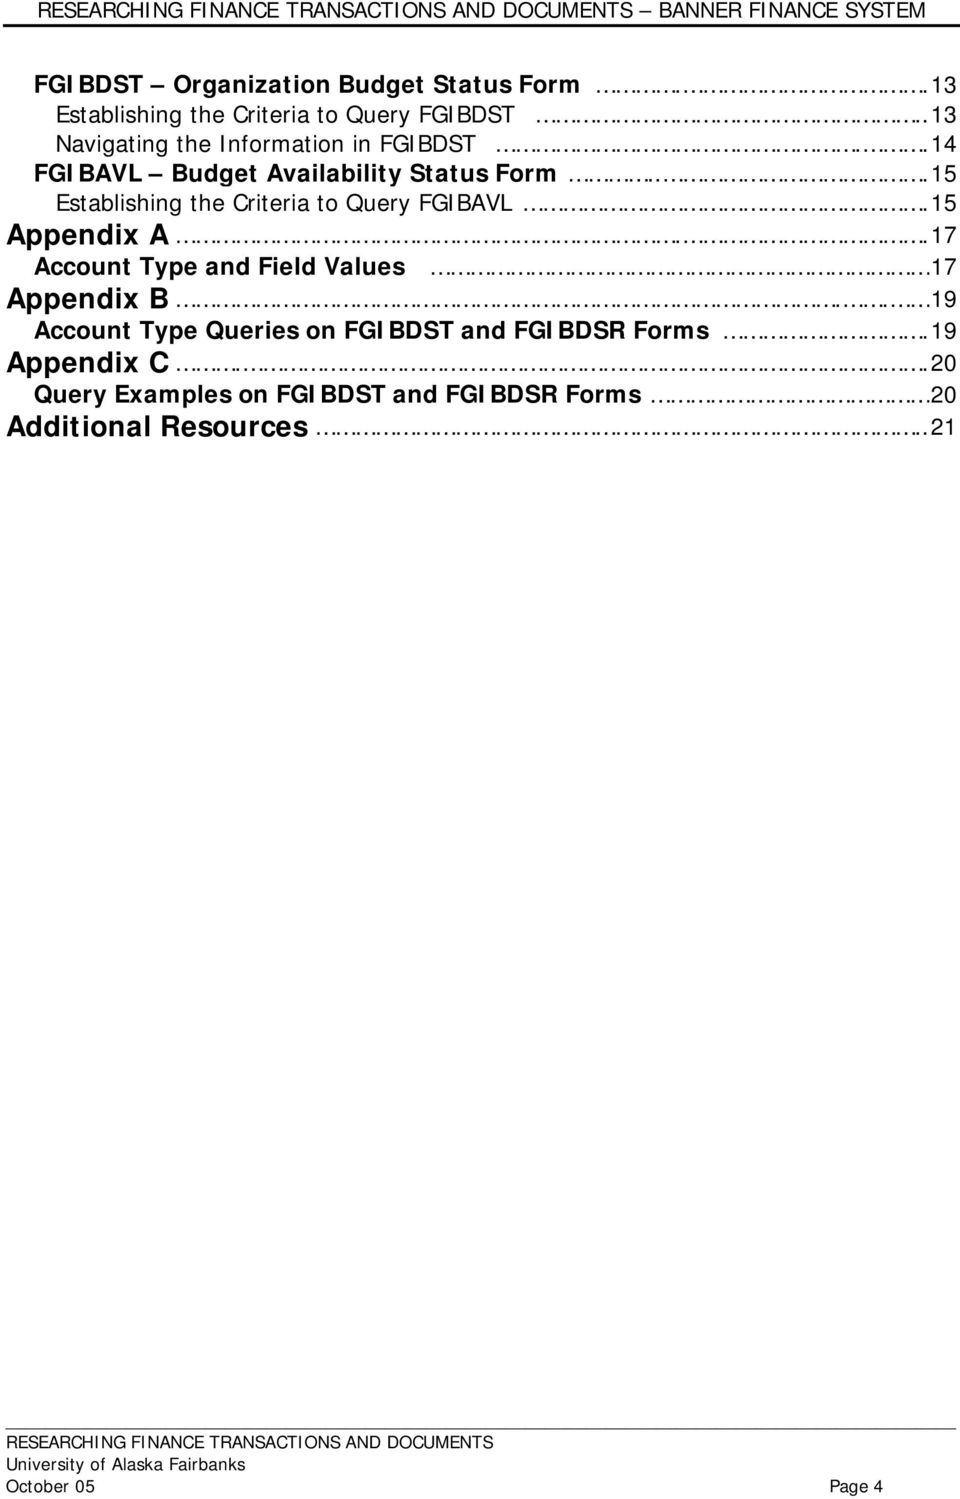 .. 15 Establishing the Criteria to Query FGIBAVL. 15 Appendix A.. 17 Account Type and Field Values 17 Appendix B.